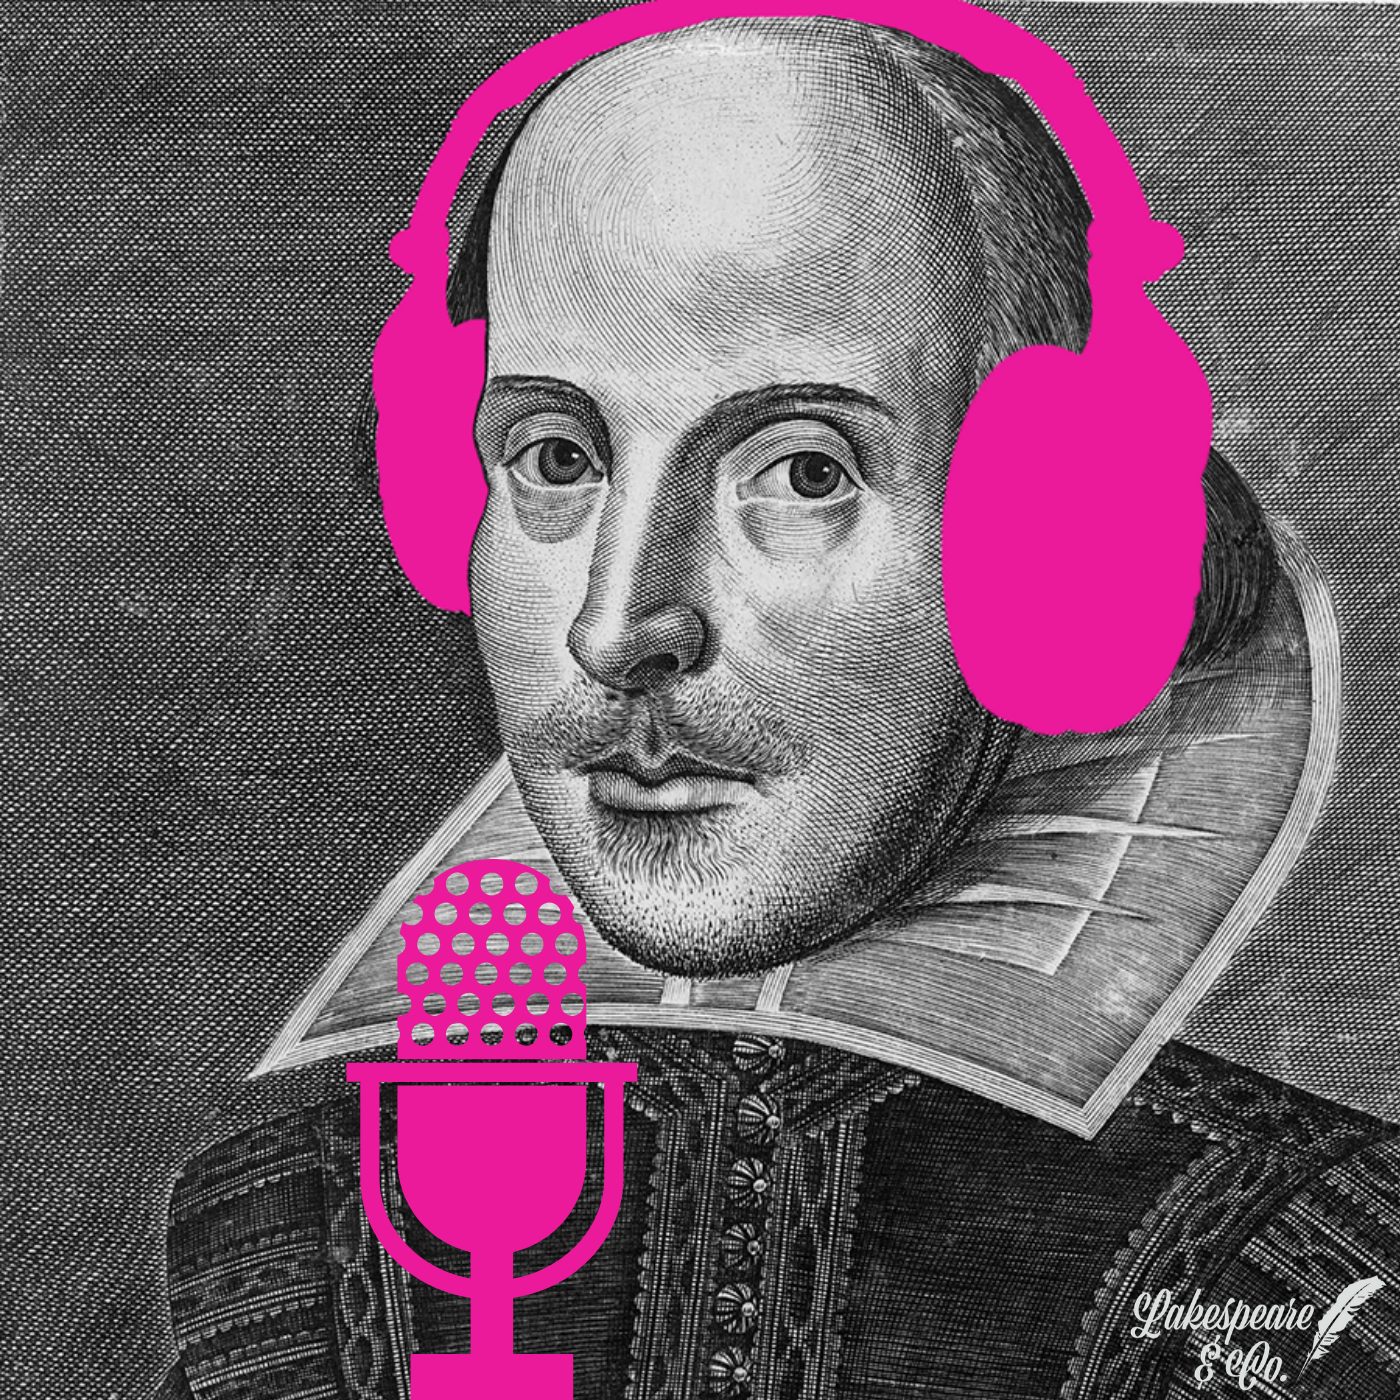 Podsphere: Performing William Shakespeare - by Lakespeare & Co.